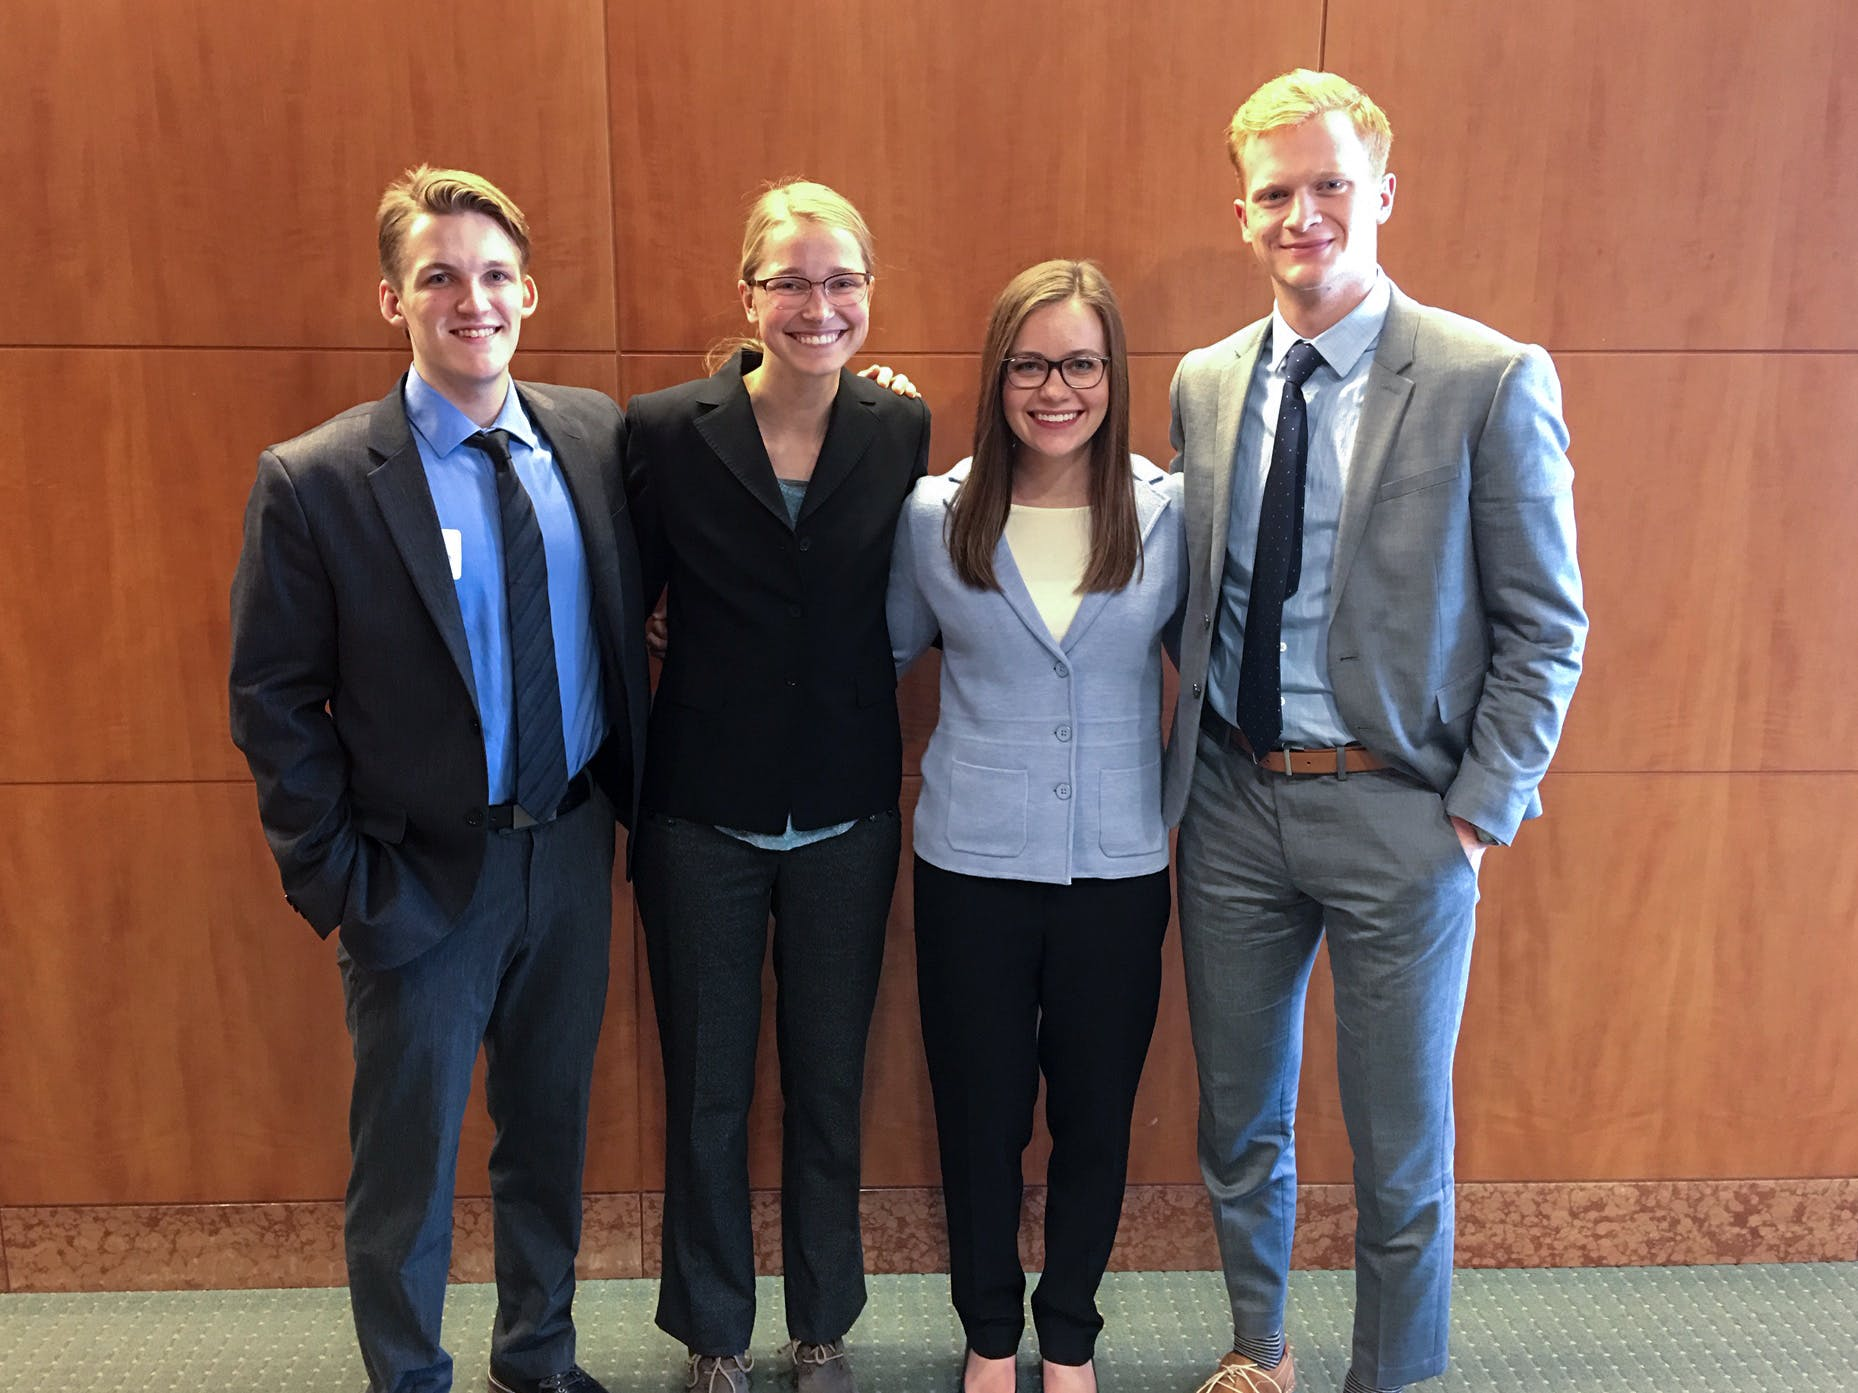 Biokinetics and Business Students Research for Mayo Clinic